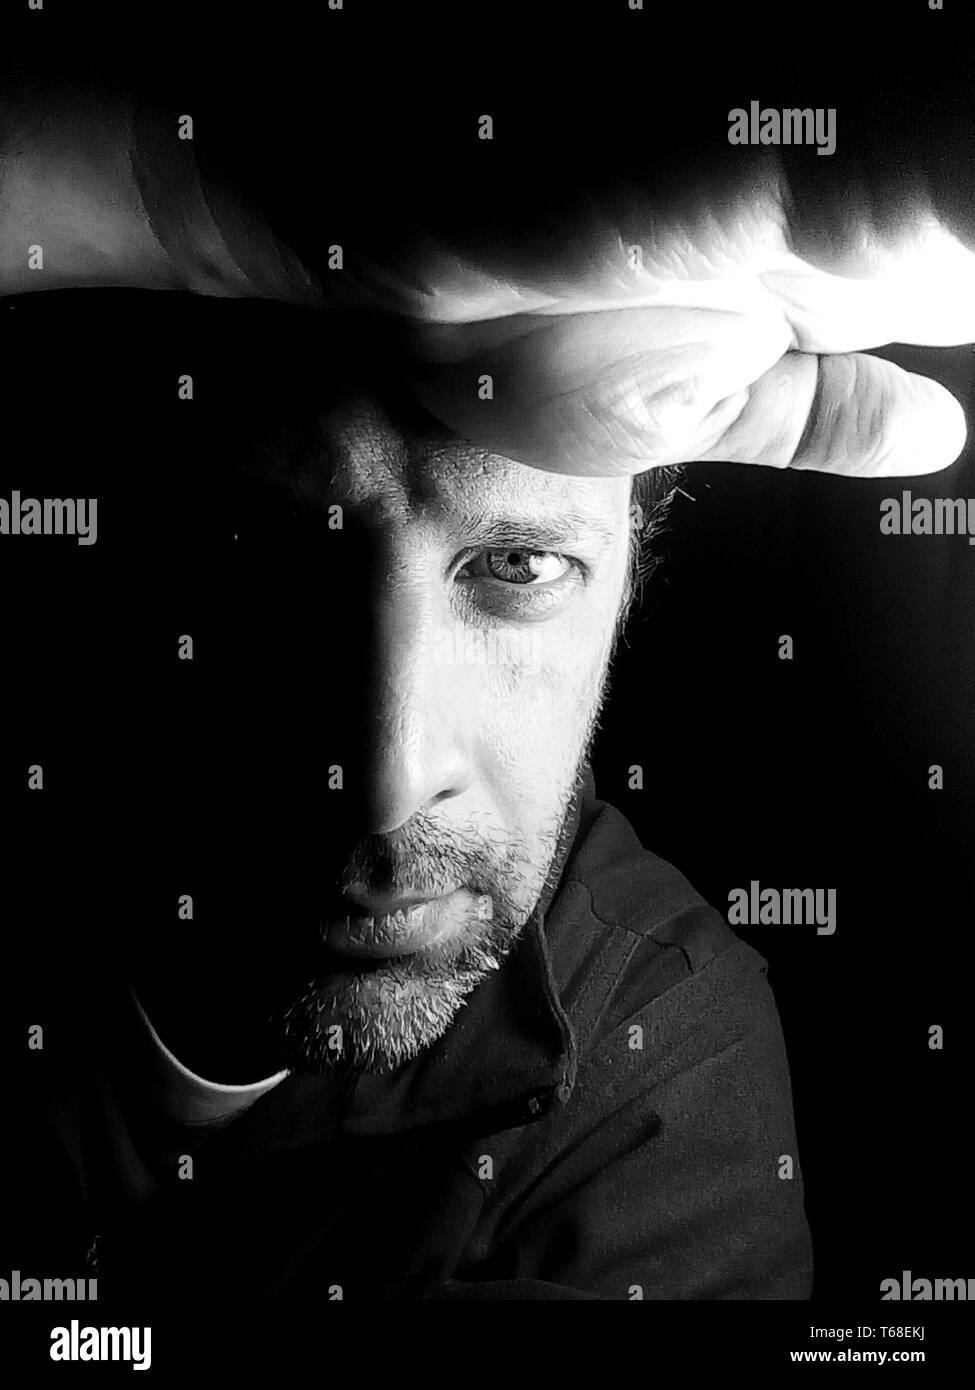 Portrait of a man in black and white - photograph Stock Photo